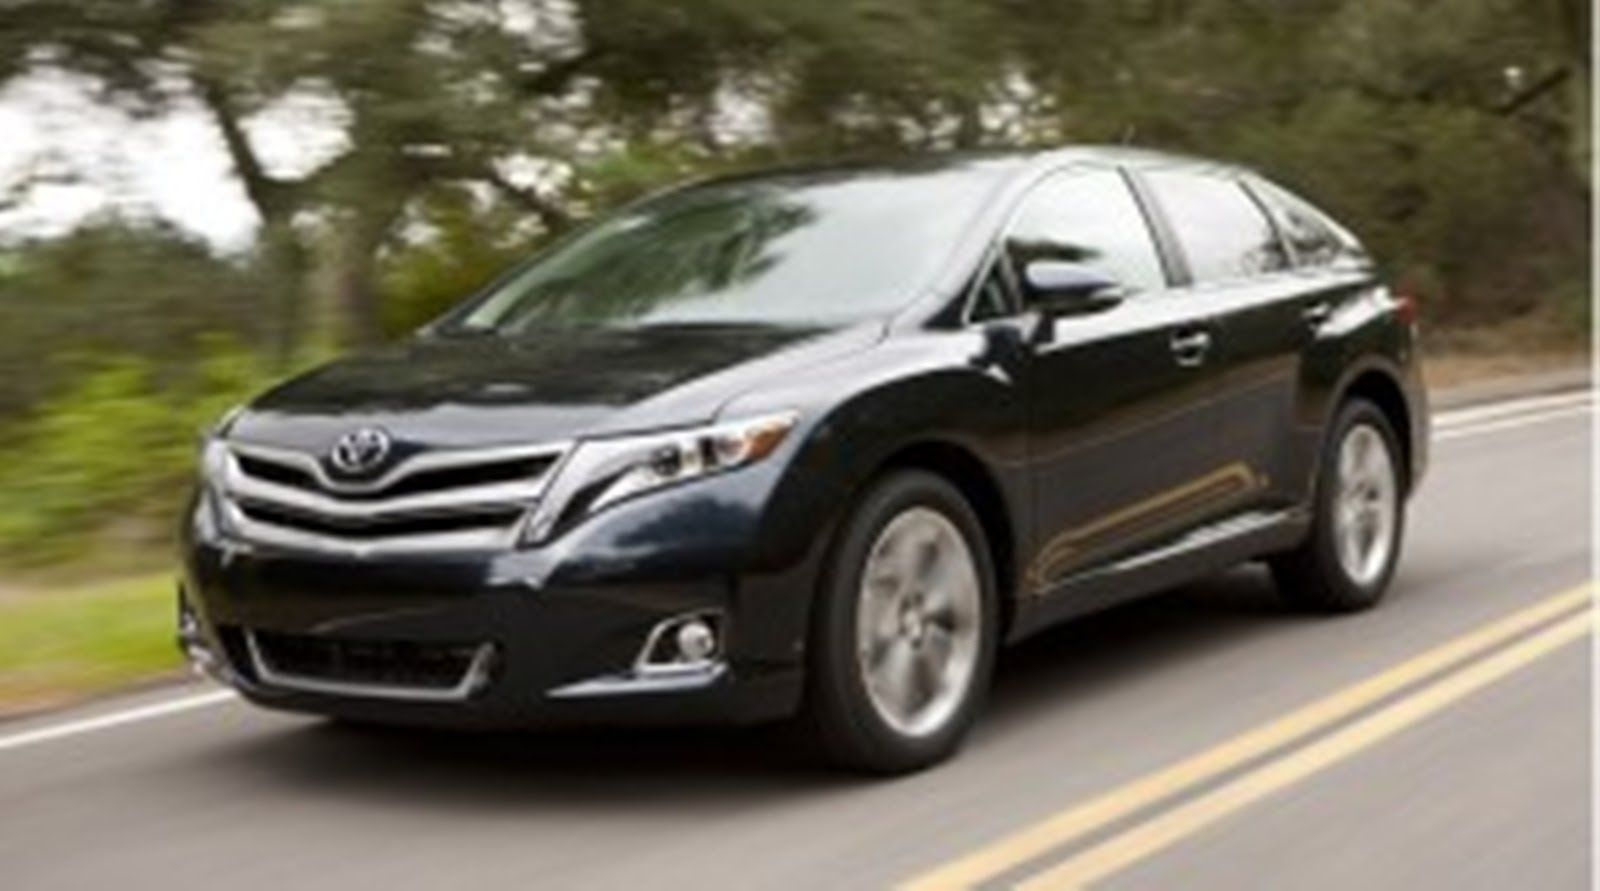 2016 toyota venza 2016 toyota venza price 2016 toyota venza release date 2016 toyota venza review toyota pinterest toyota venza and toyota